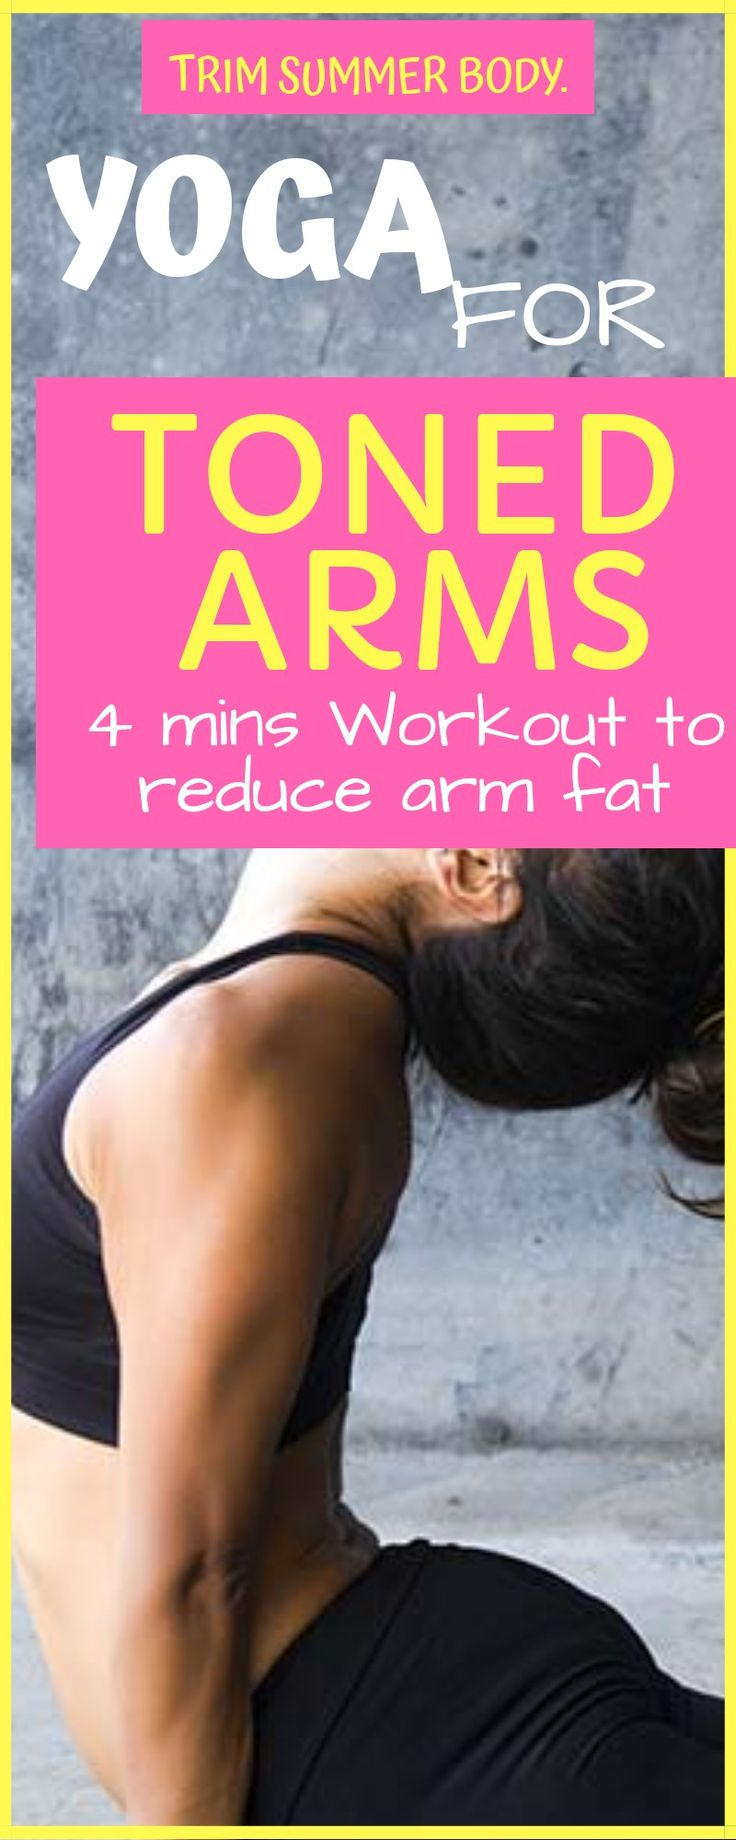 yoga for toning body, yoga for toned arms